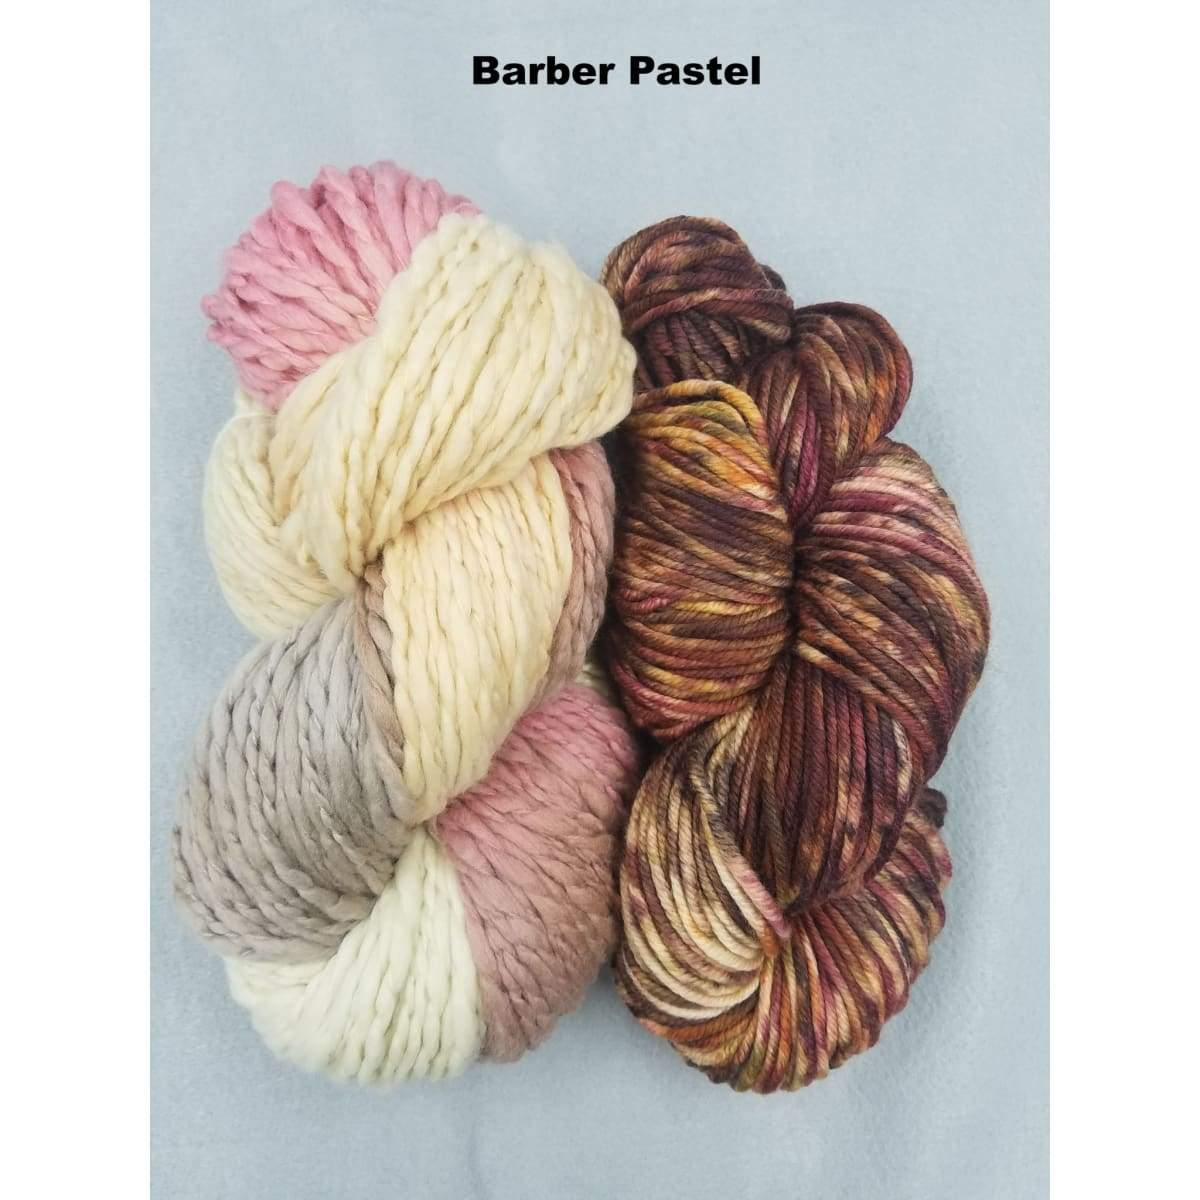 BoHo Shawl - Barber Pastel - Knitting Kit